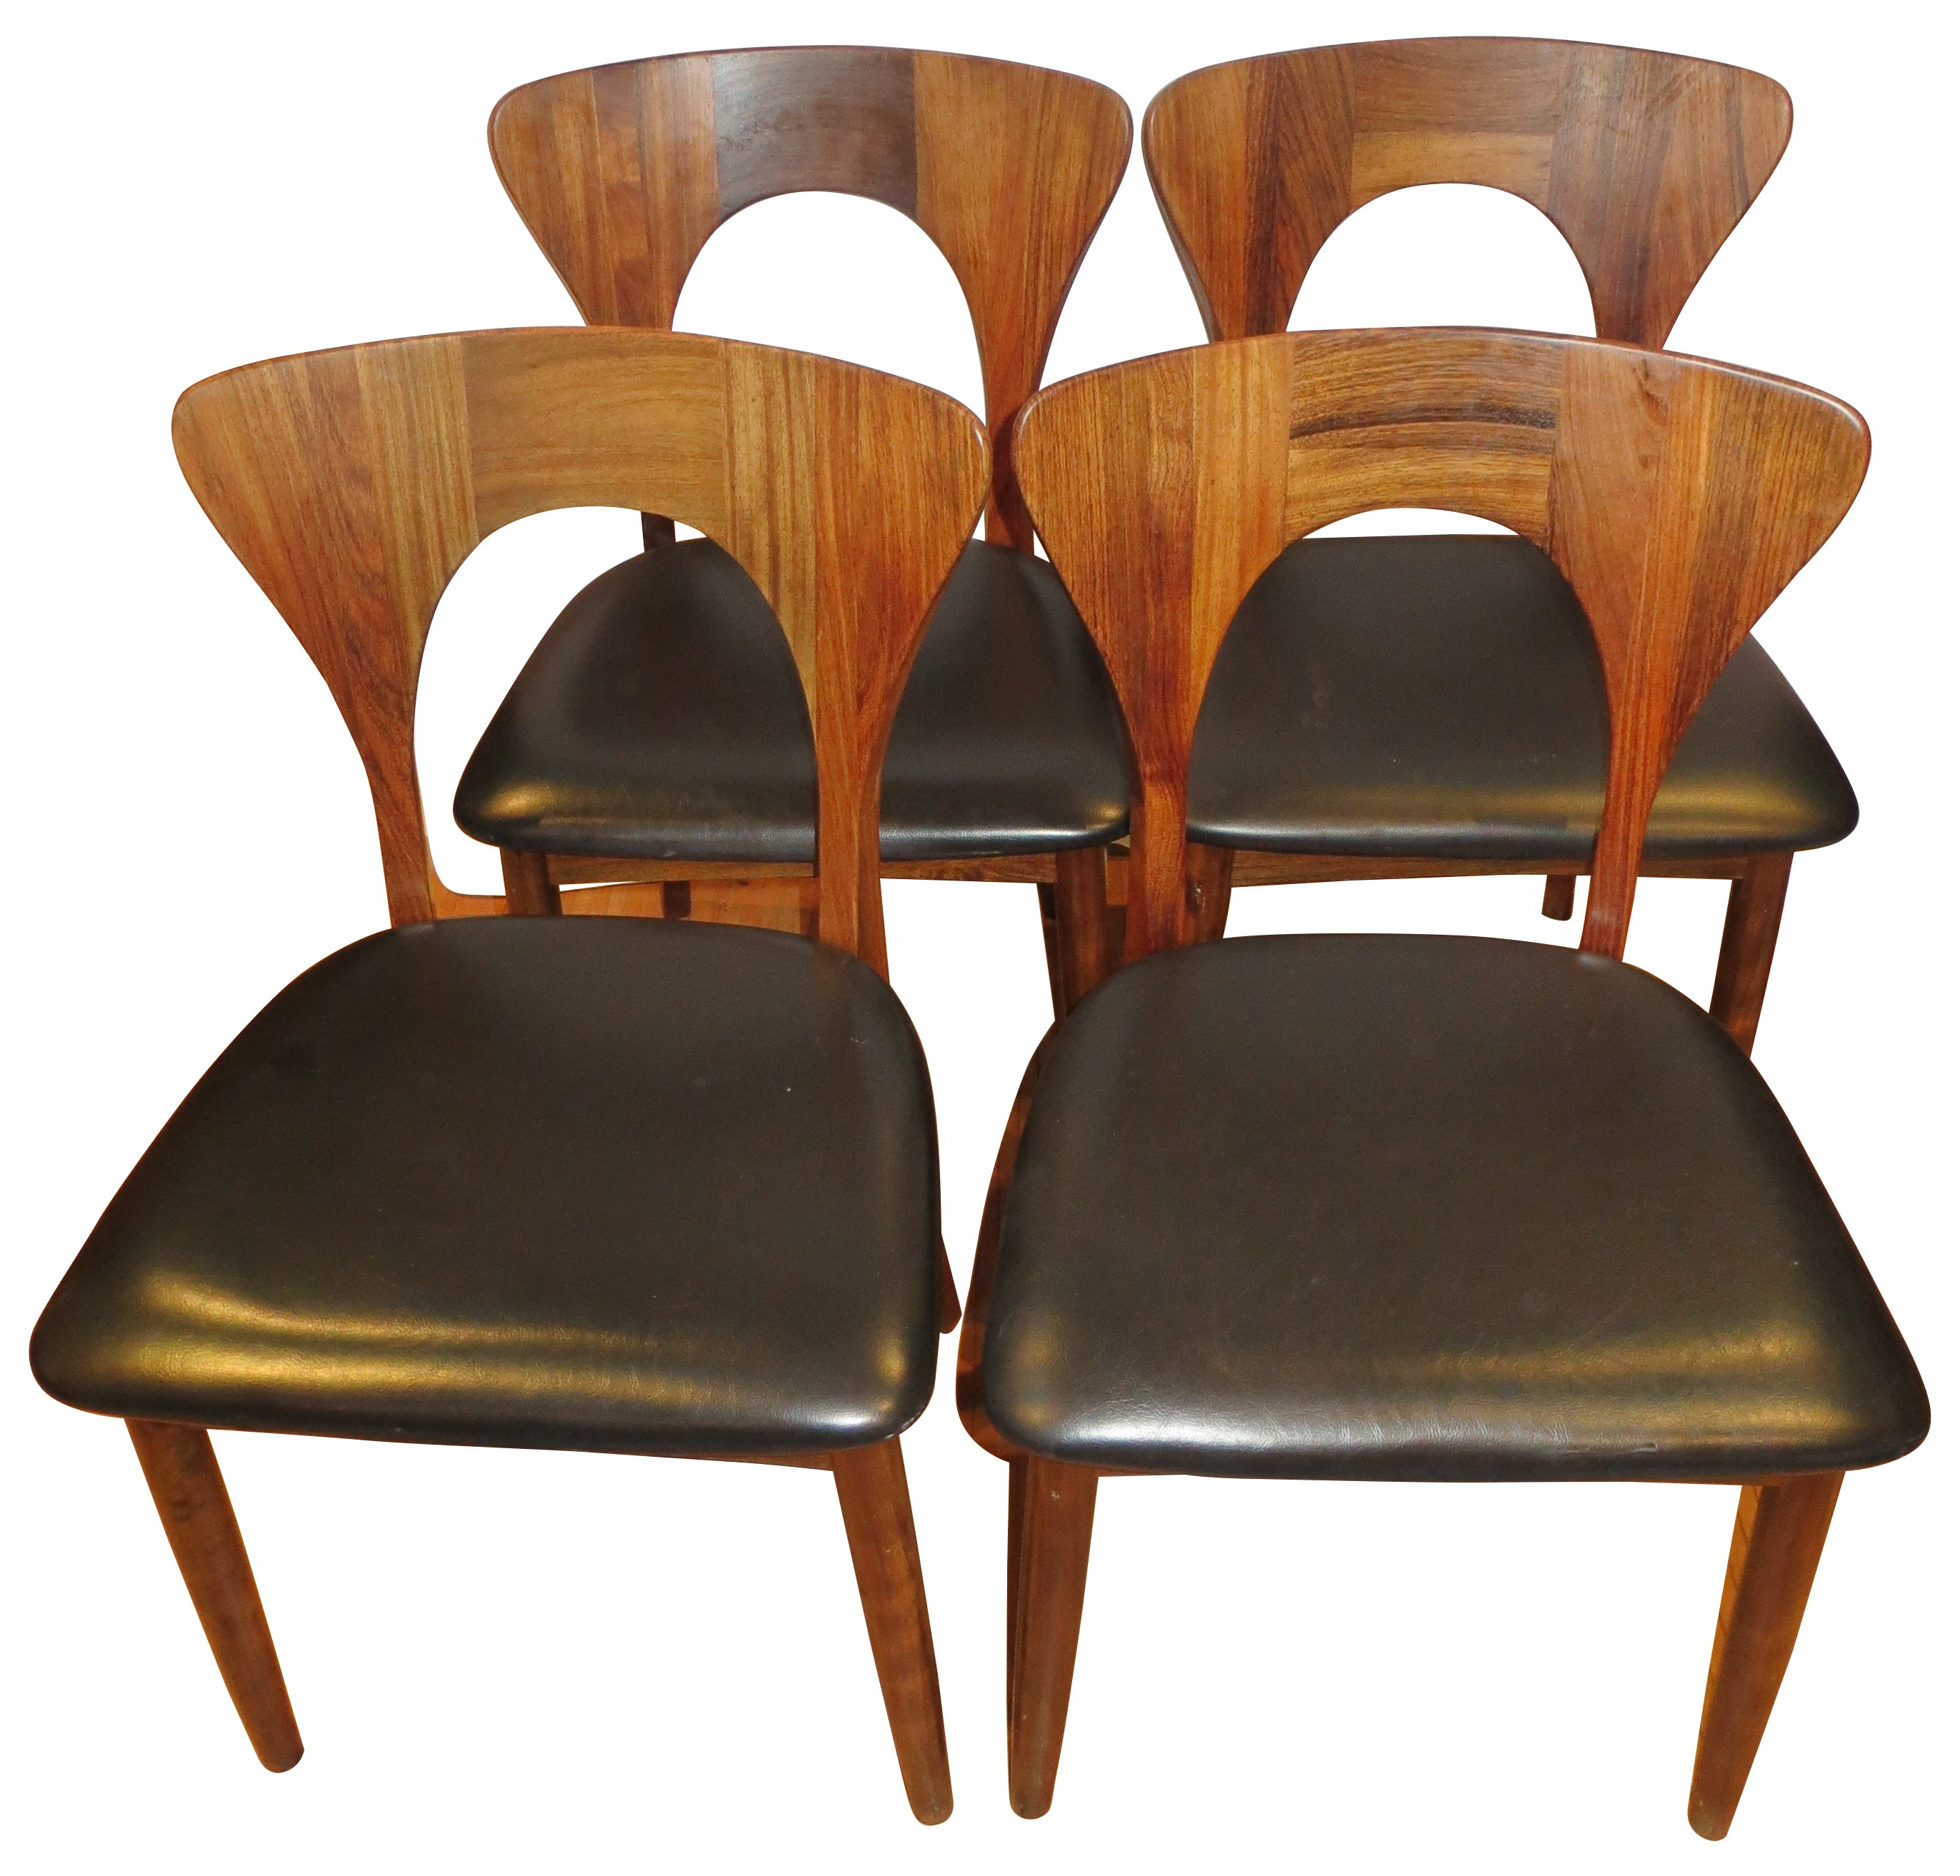 Set of 4 Peter chairs in Rio rosewood and black leatherette Niels